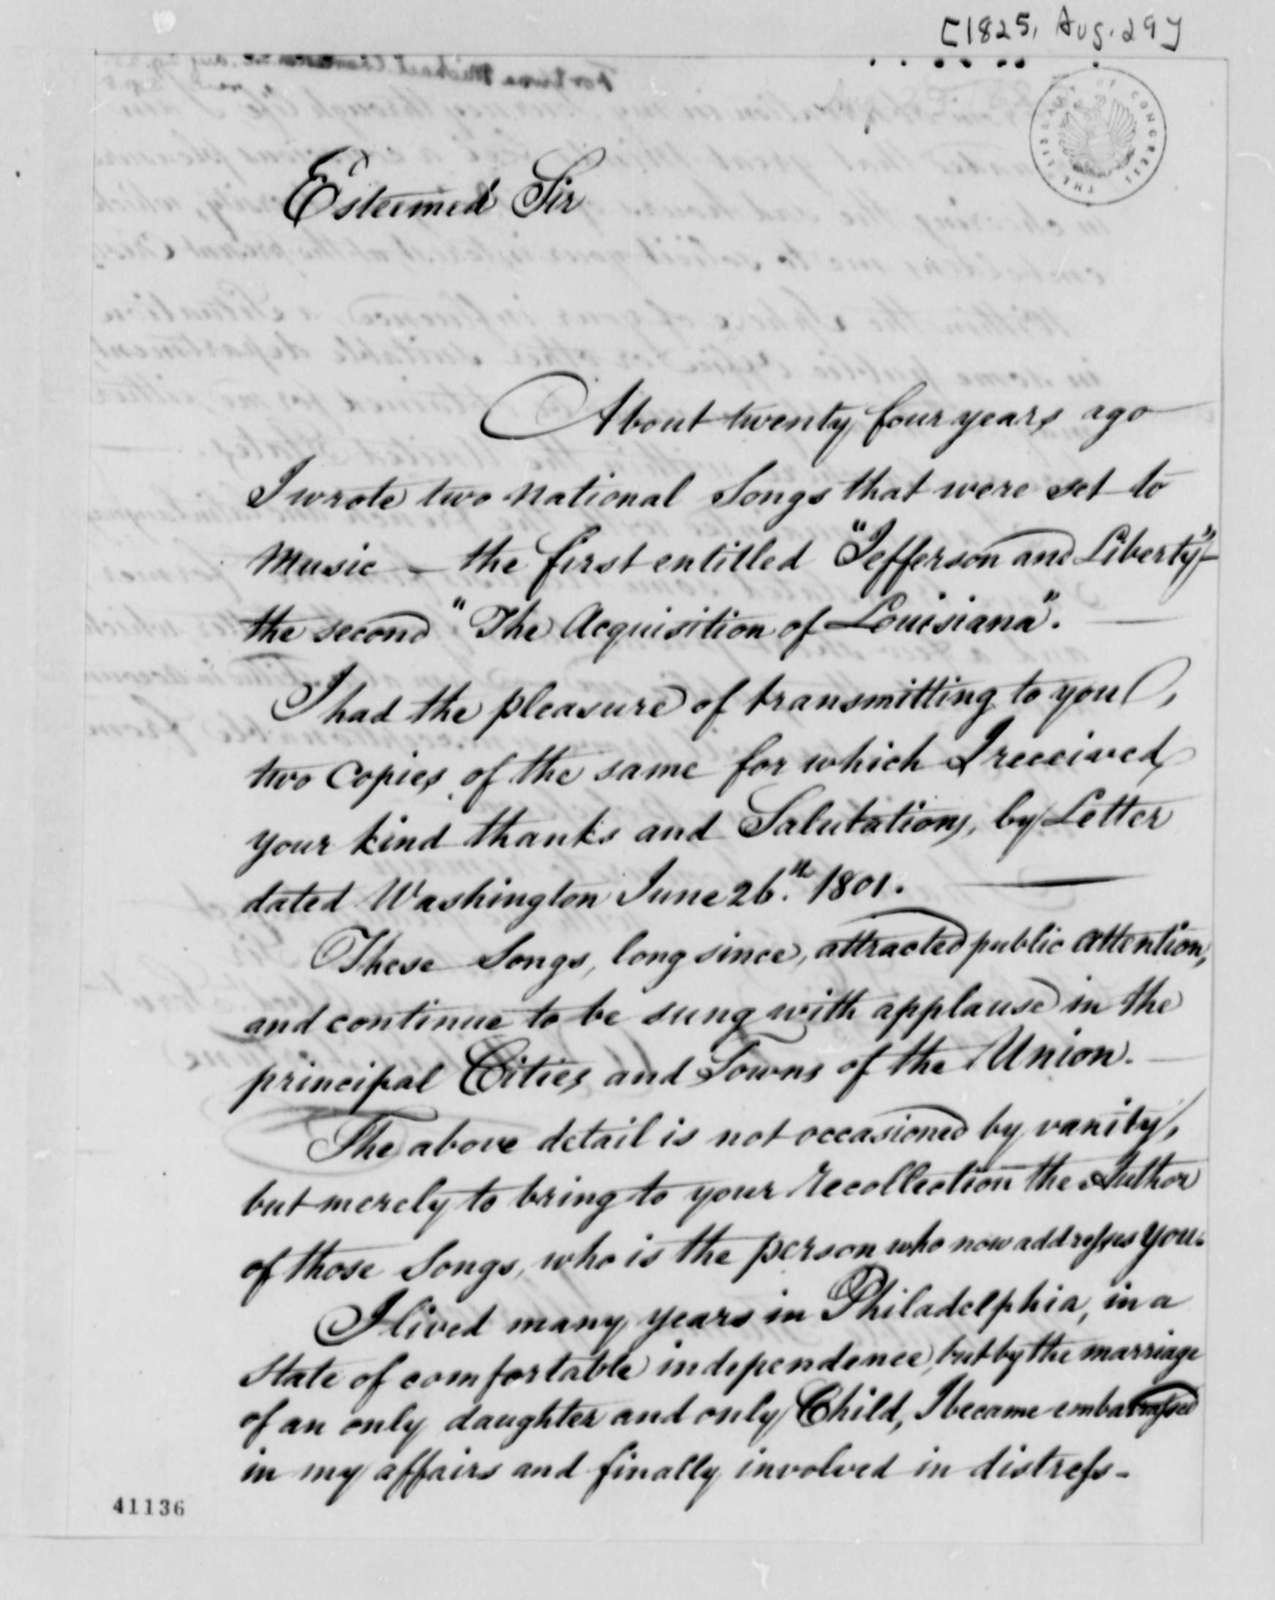 Michael Fortune to Thomas Jefferson, August 29, 1825